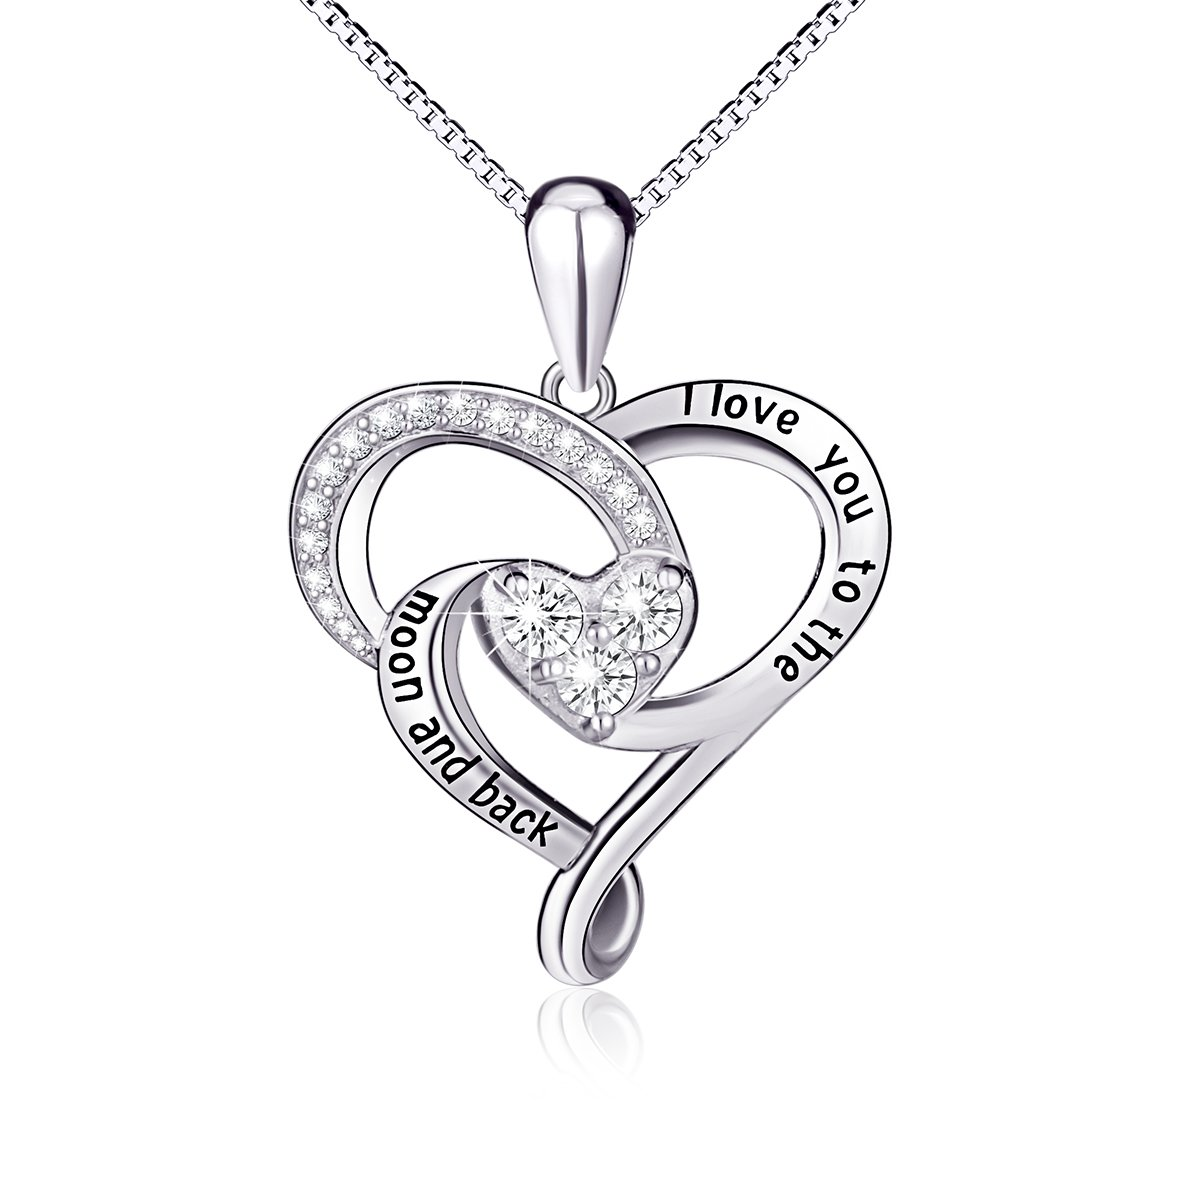 925 Sterling Silver Jewelry ''I Love You To The Moon and Back'' Love Heart Pendant Necklace